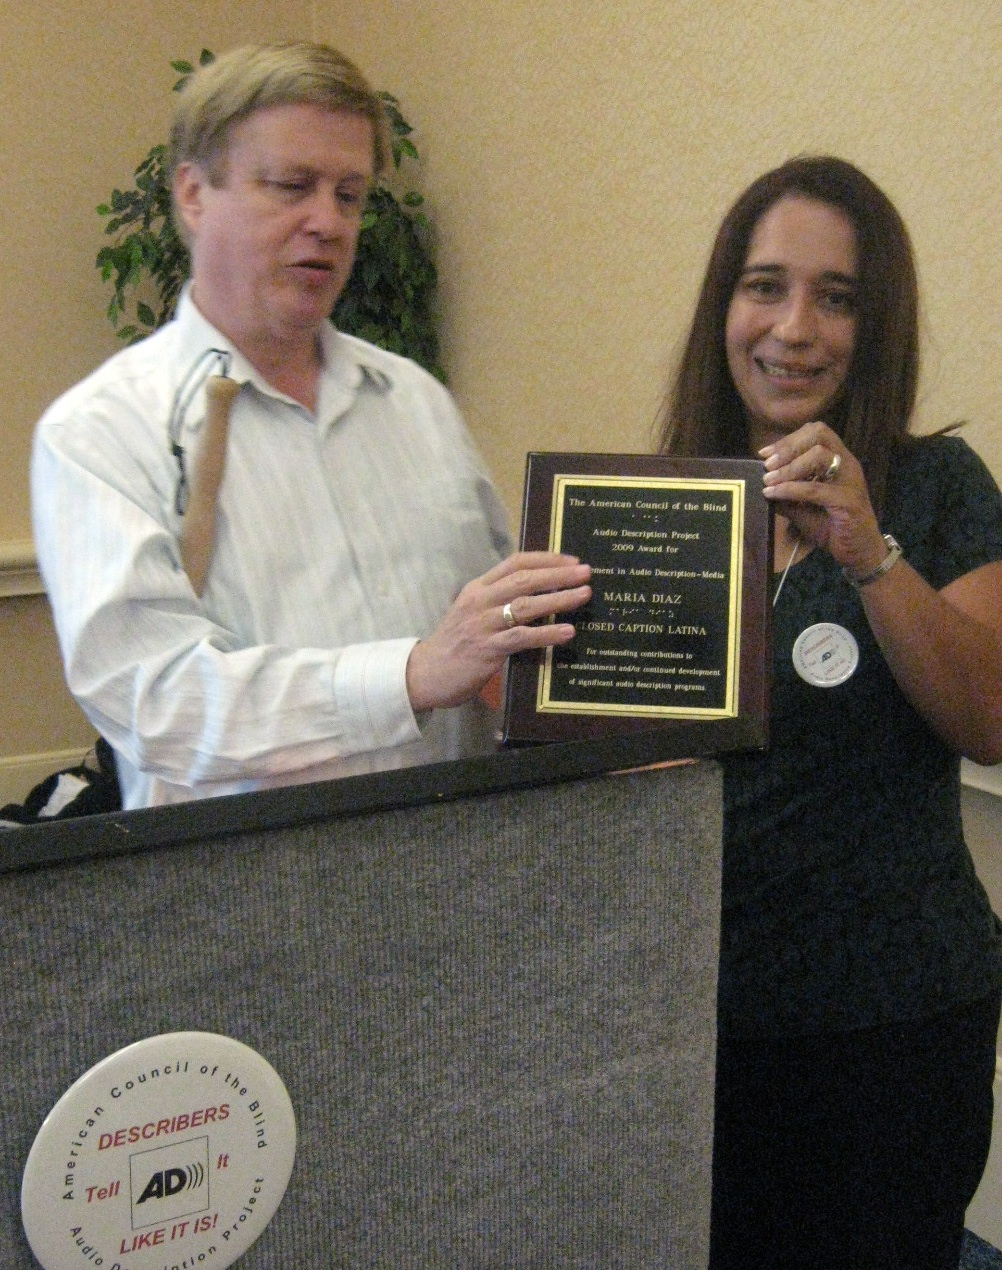 Christopher Gray, Bay Area Digital and immediate past-president, ACB; Maria Diaz, Closed Caption Latina accepting Achievement Award in Audio Description-Media